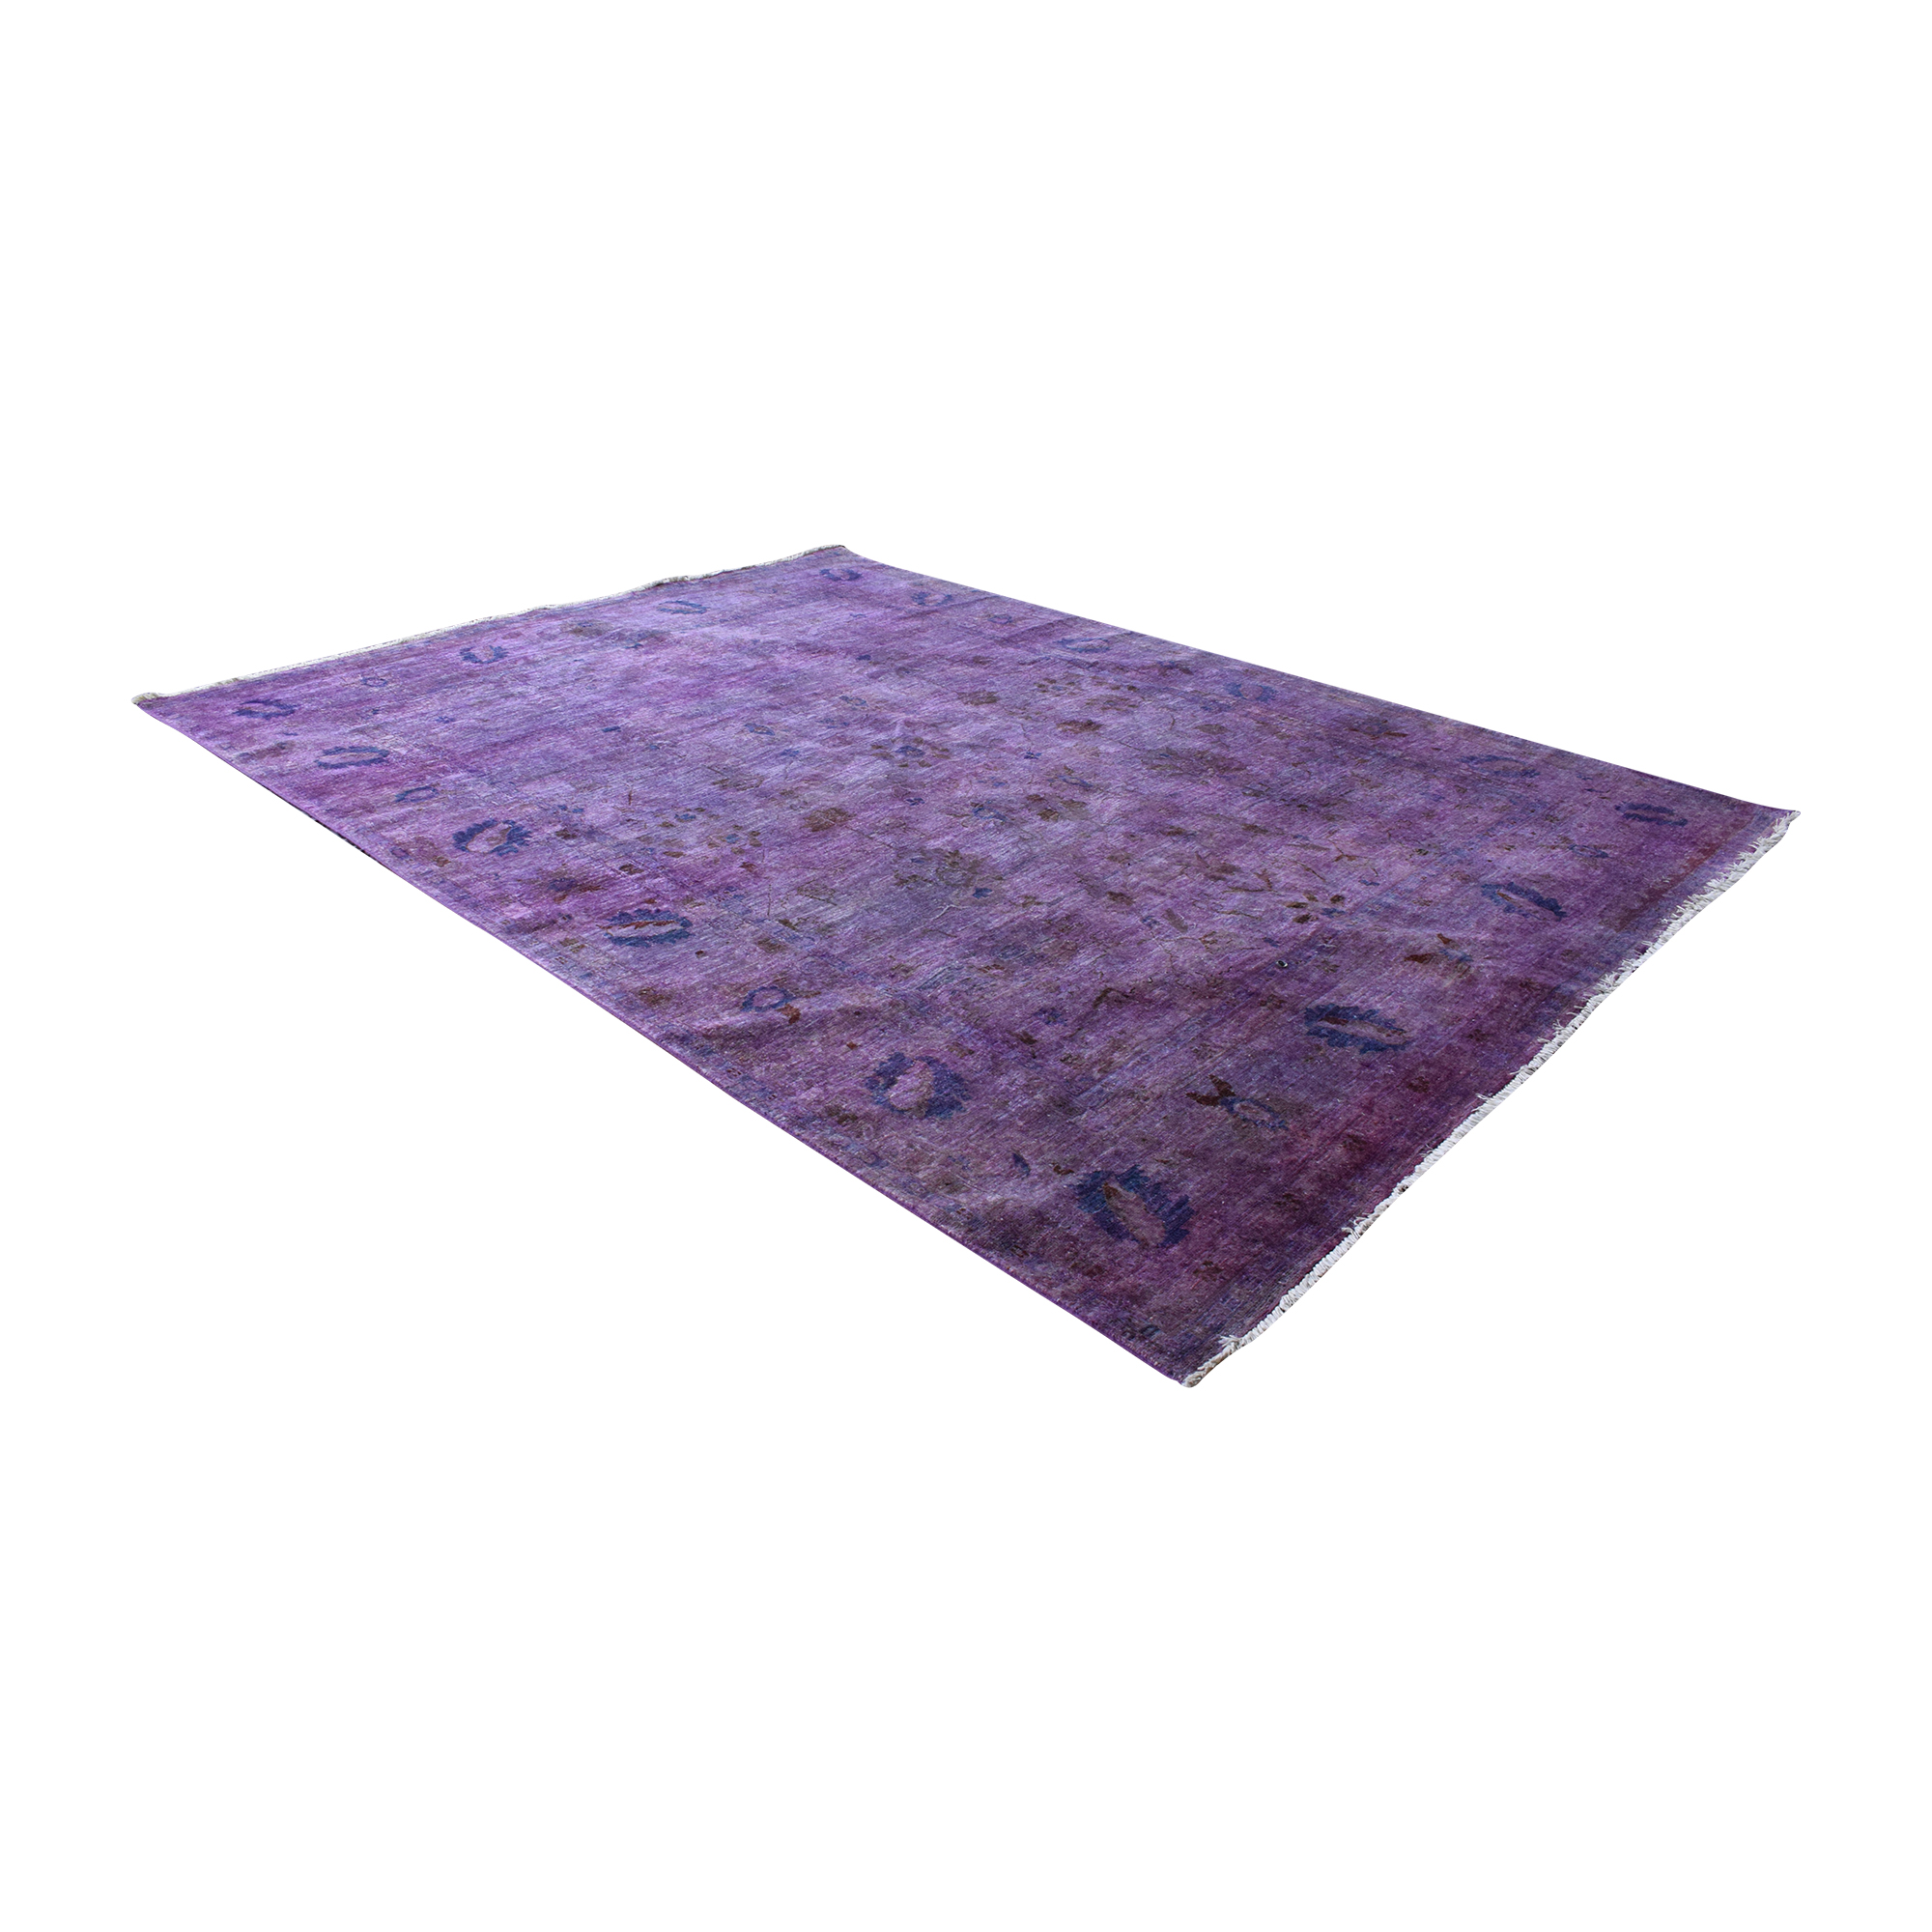 Rugs USA Rugs USA Overdyed Purple Rug nyc